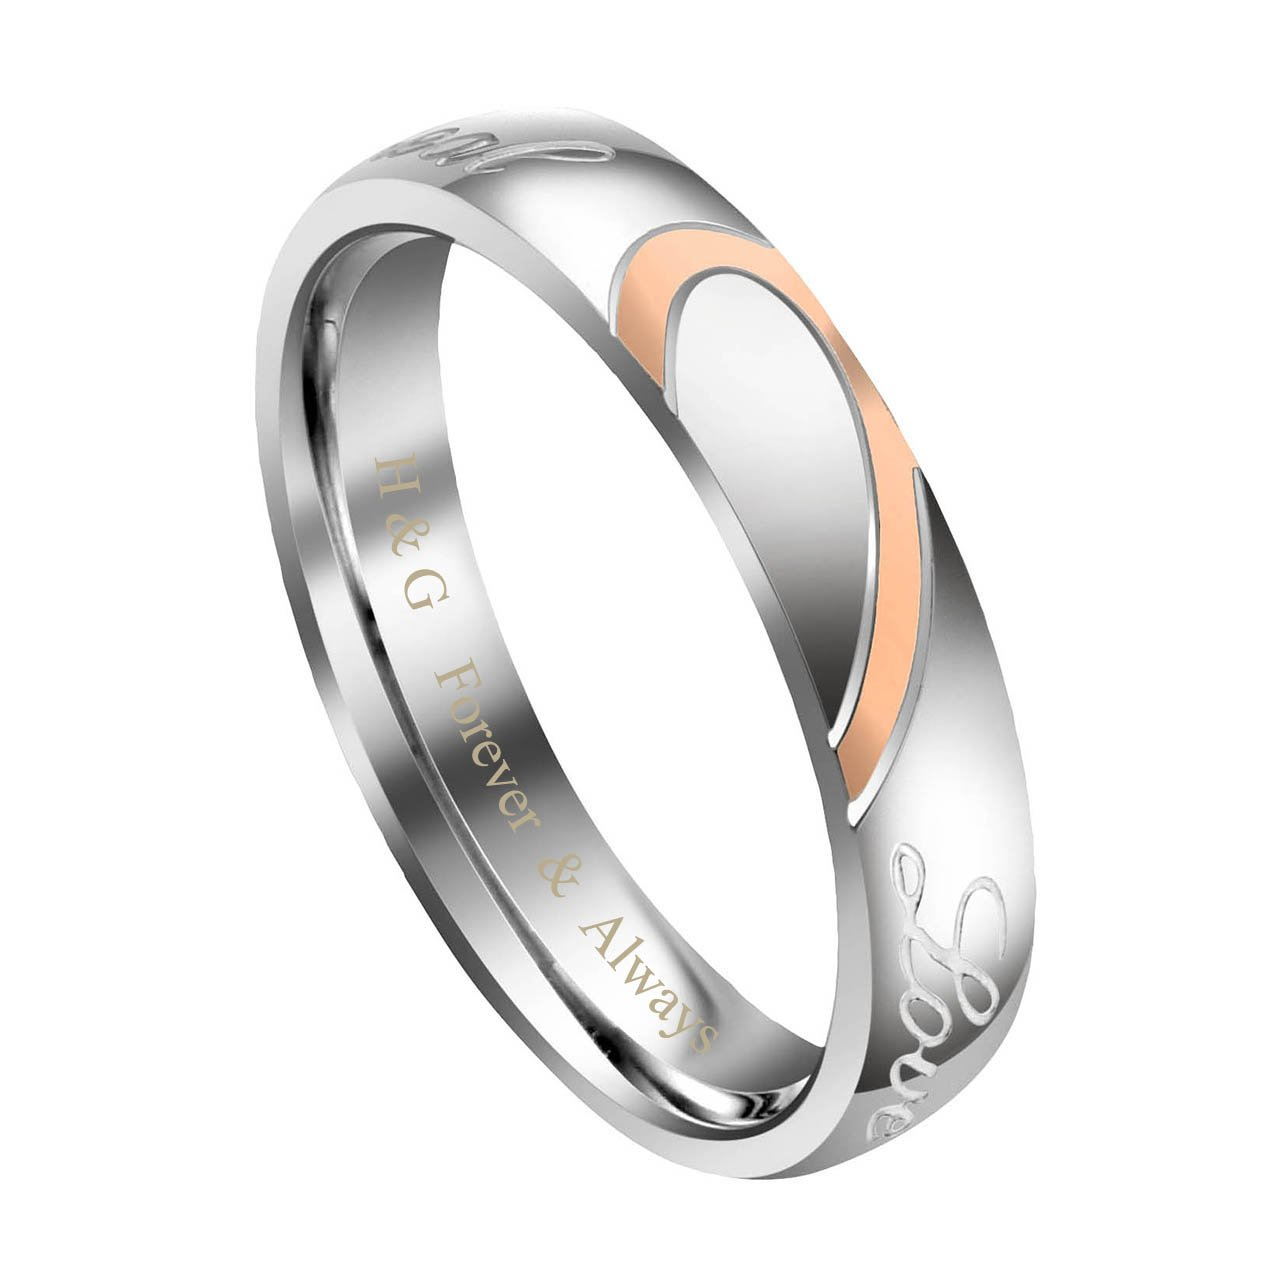 Jovivi Custom Couple Rings - Personalized Her Stainless Steel Real Love Heart Matching Set Couples Engagement Wedding Band Valentine Gifts Size 6